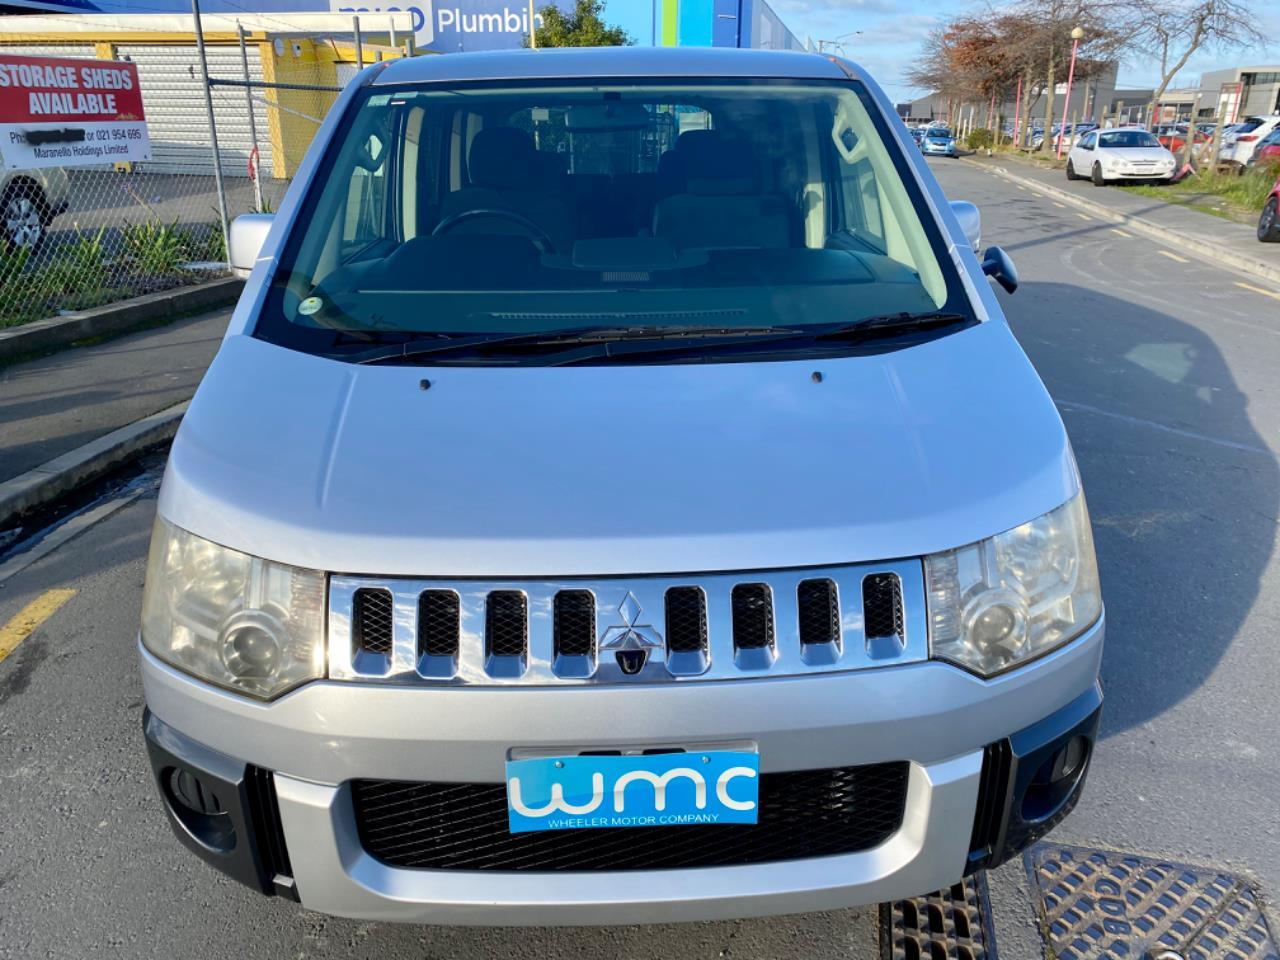 image-2, 2009 Mitsubishi Delica D:5 Exceed 7-Seater at Christchurch